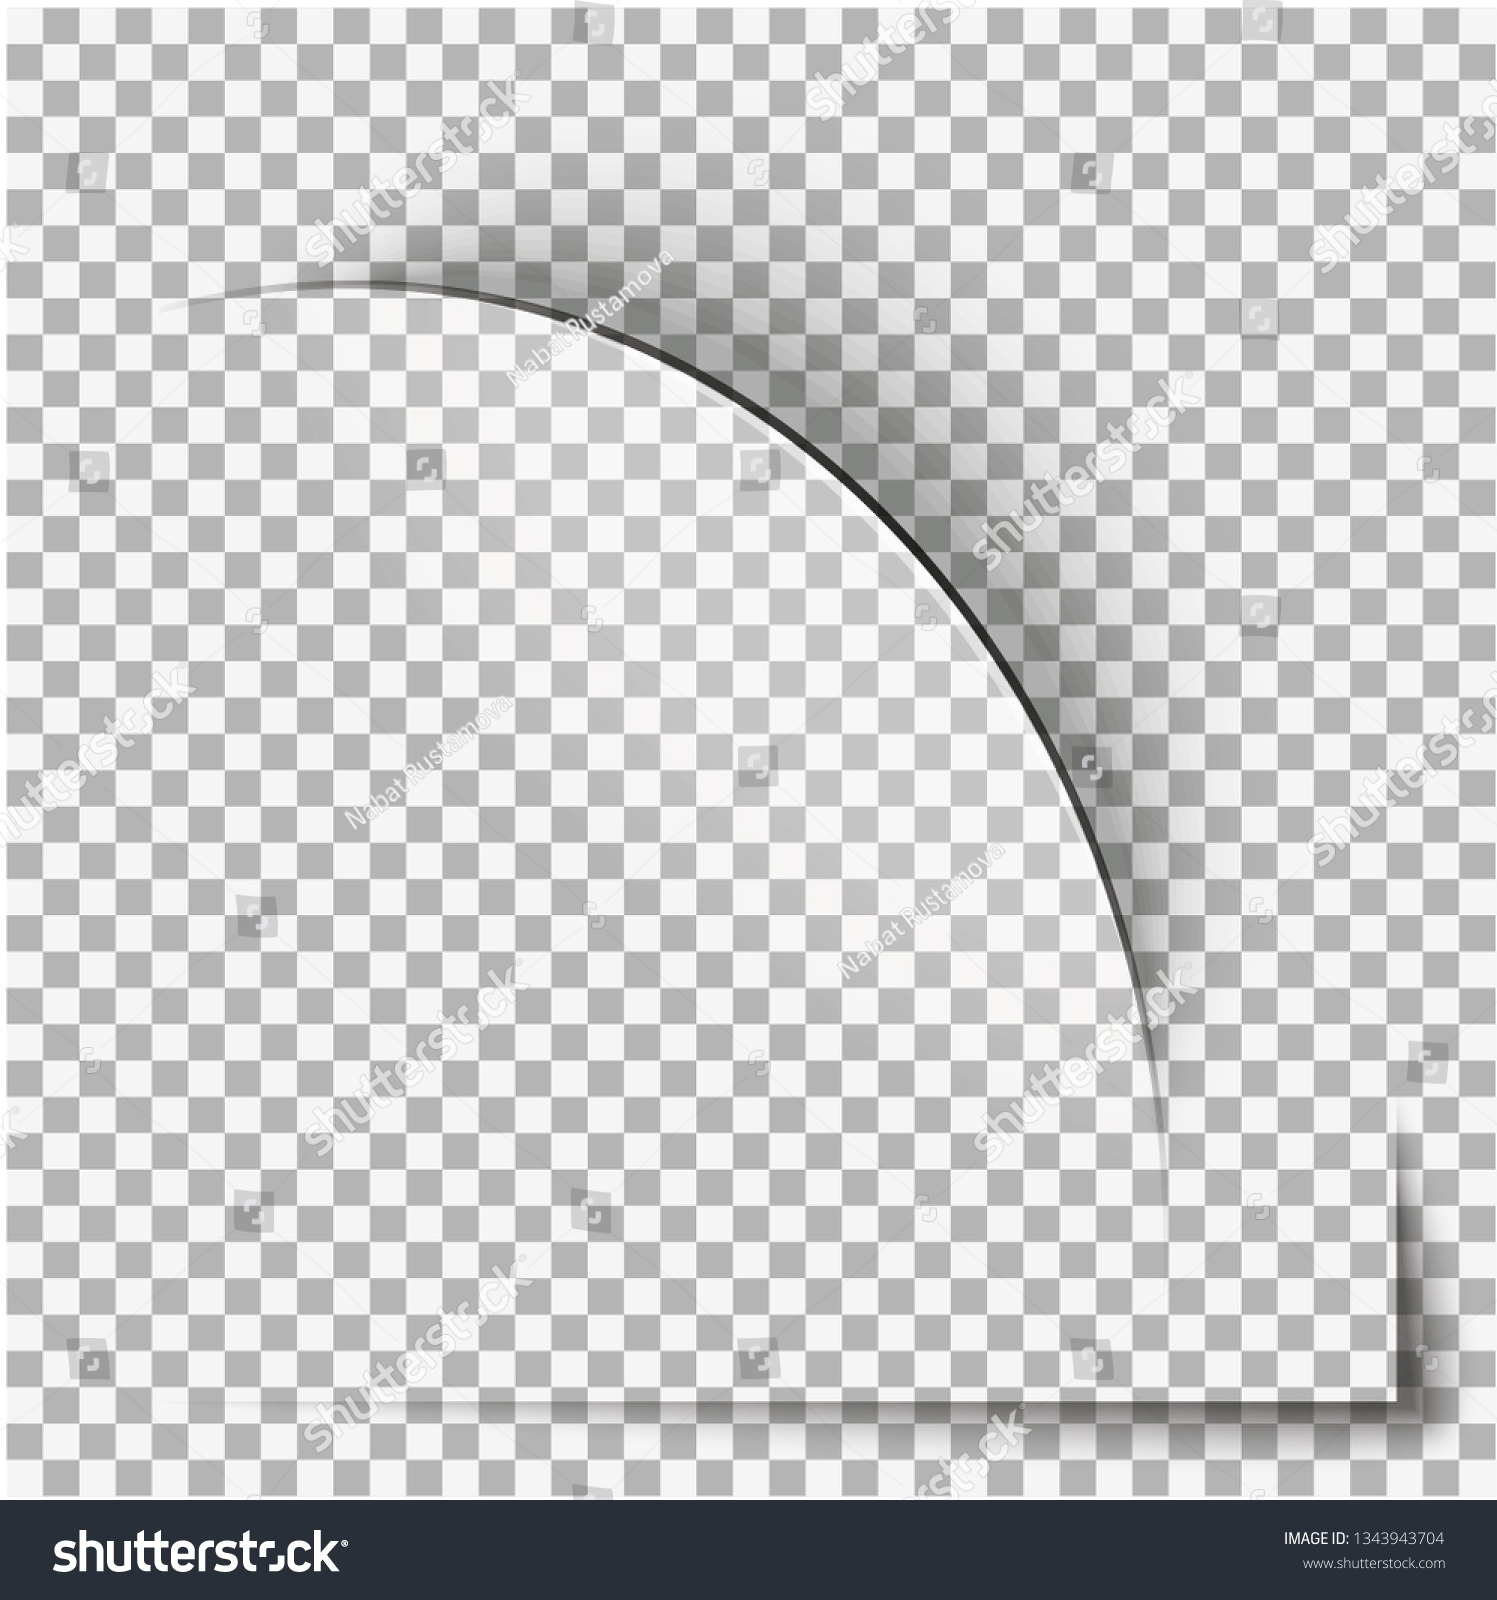 Ripped Paper Vector Stock Vector (Royalty Free) 1343943704